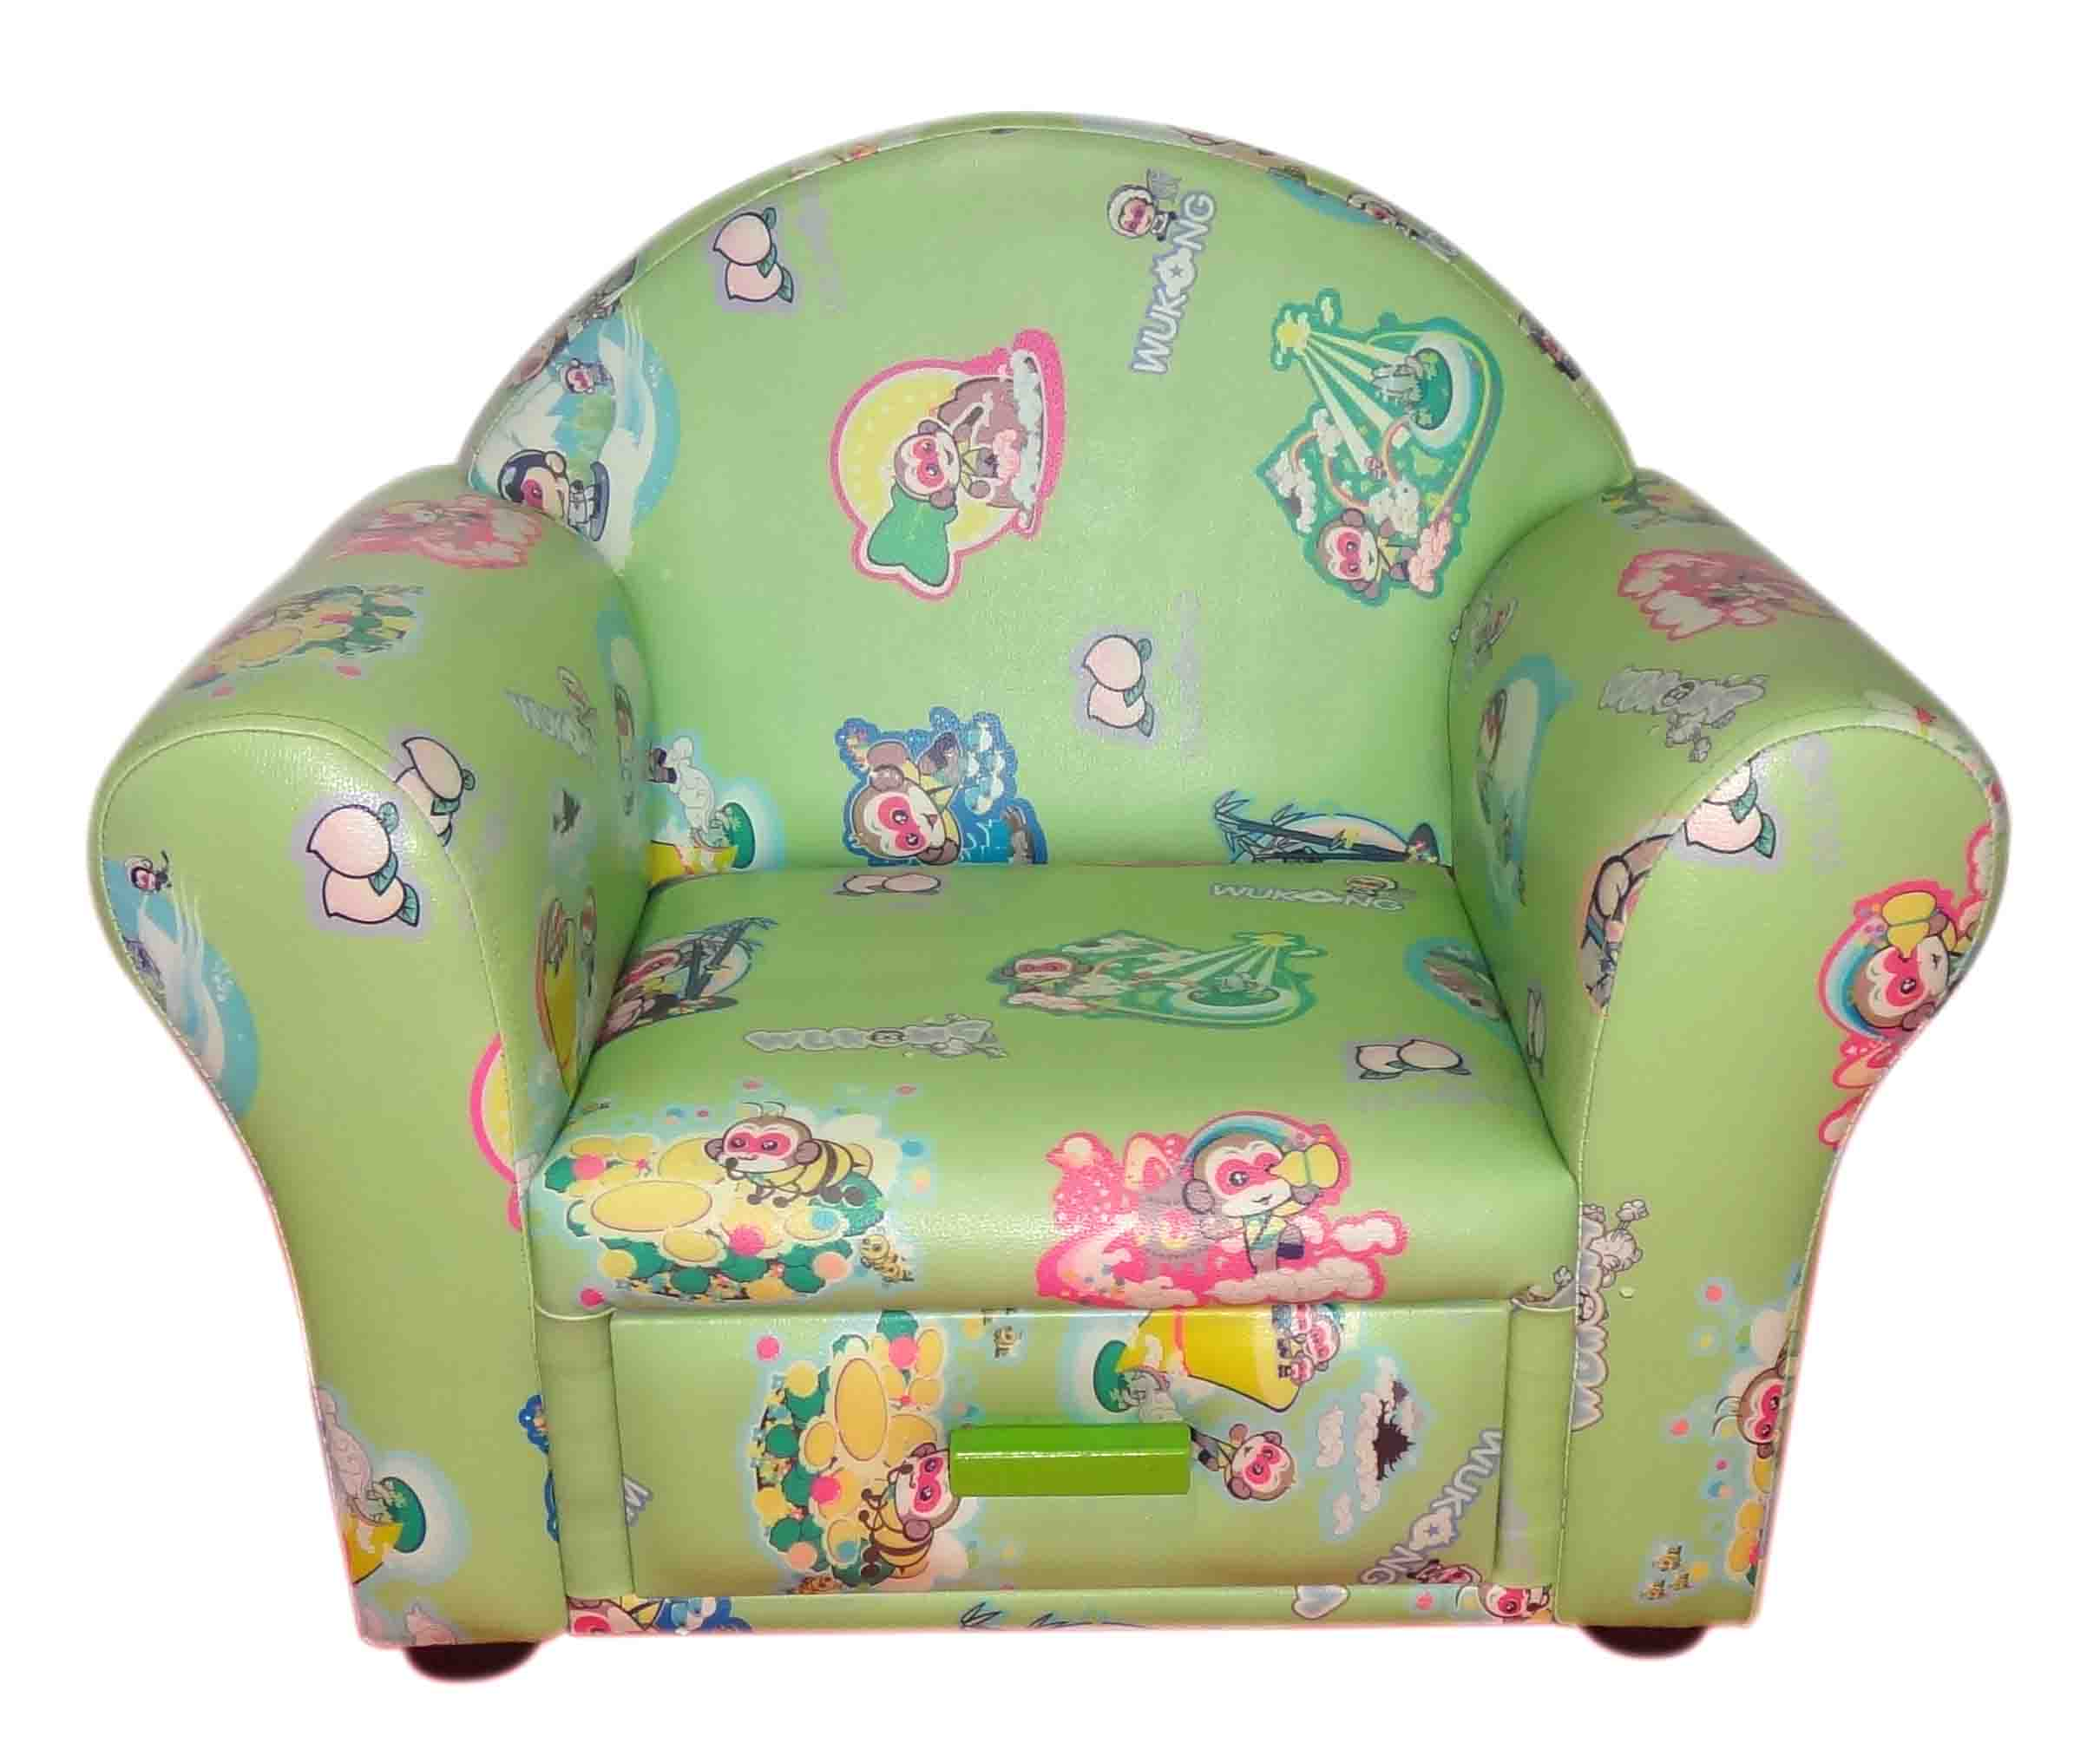 Kids Sofa Kids Sofa Suppliers and Manufacturers at Alibaba